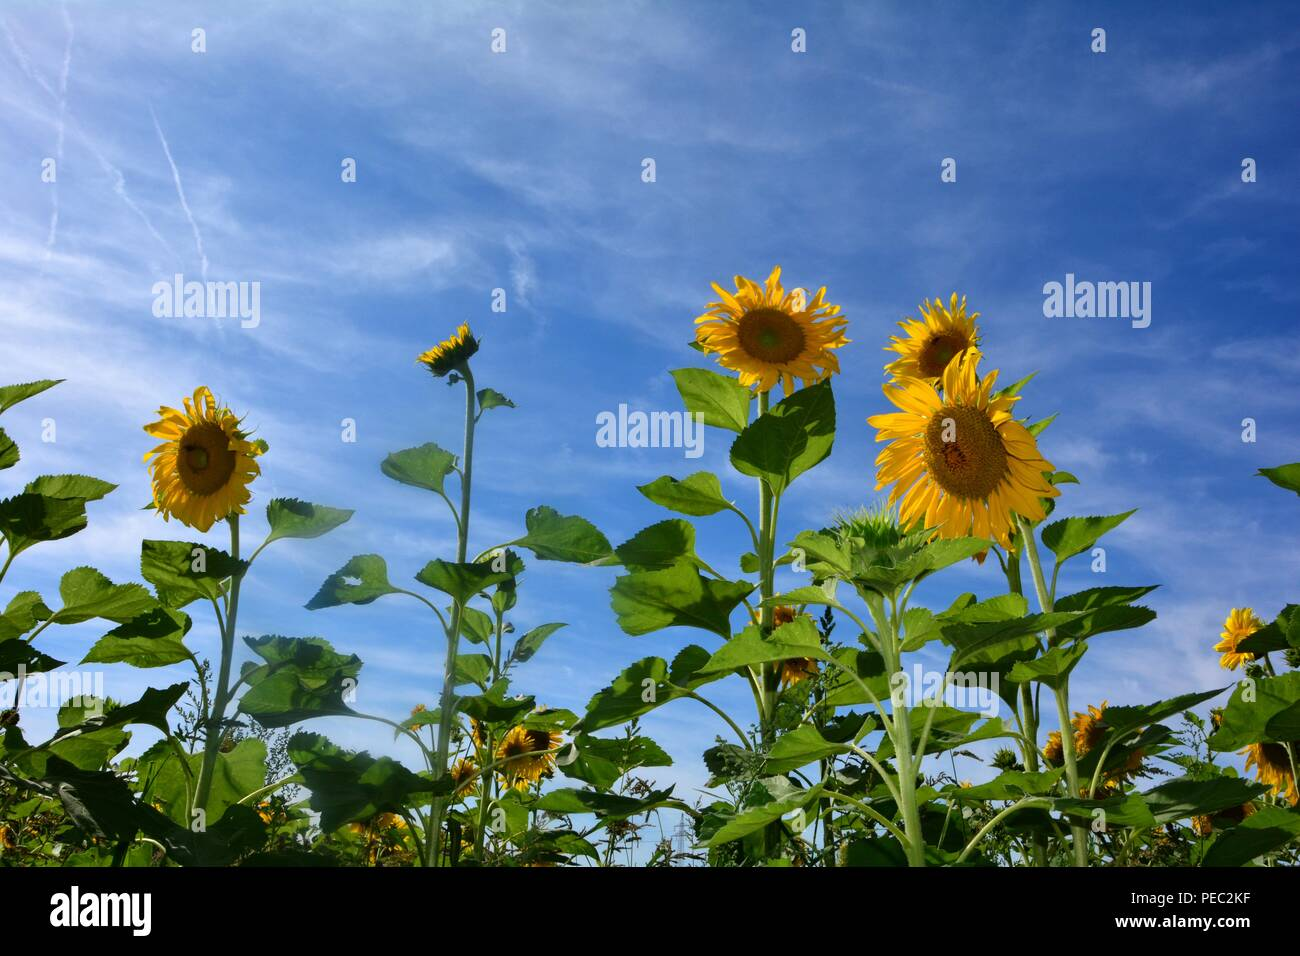 Big sunflower  on the field - Stock Image